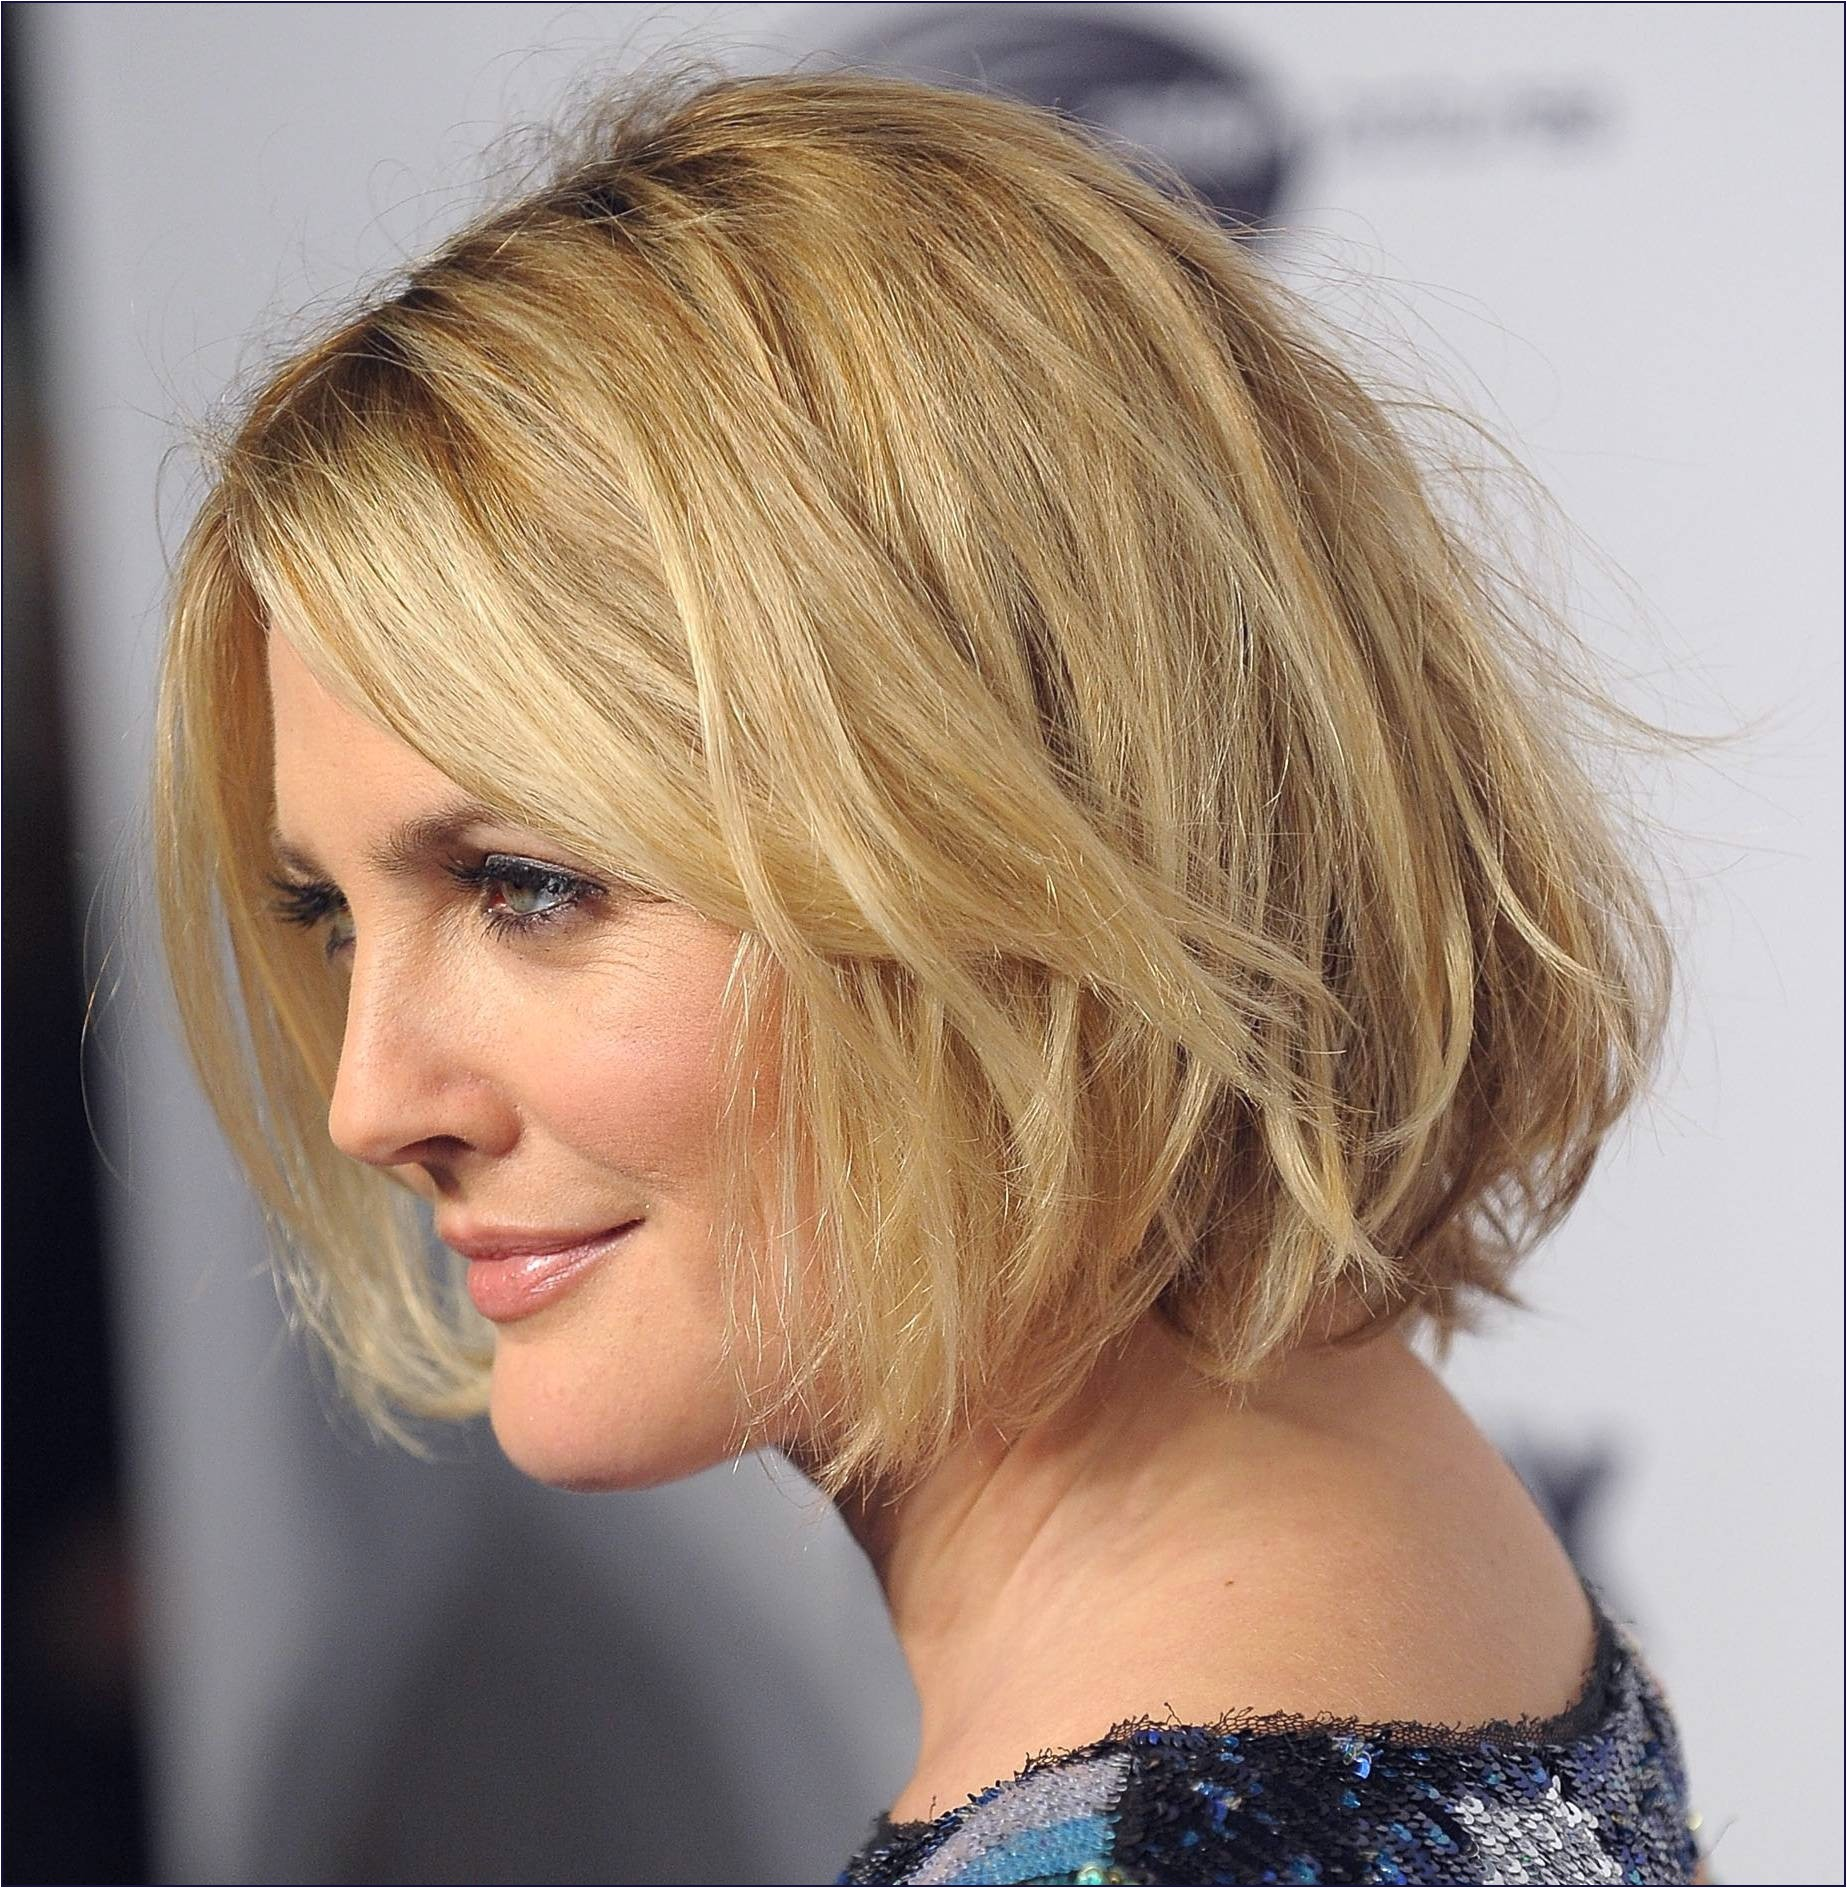 Bob Hairstyles for Mature Women Feathered Bob Hairstyles Medium Length Hair Best Best Layered Bob